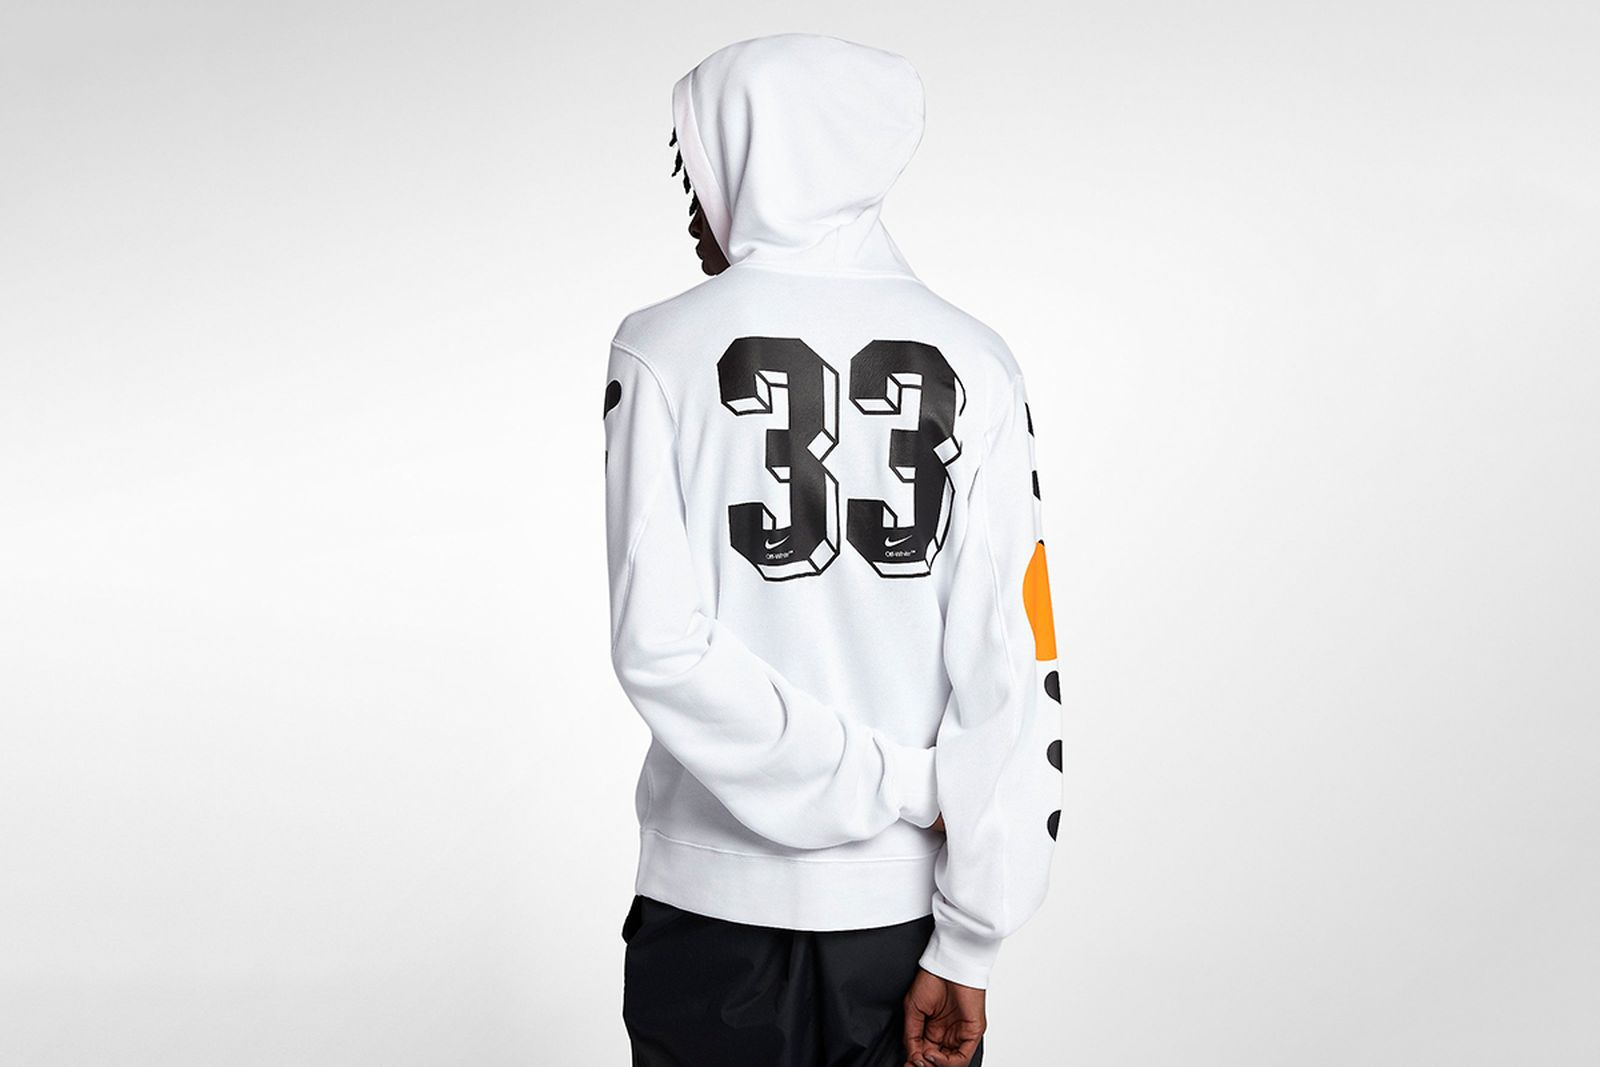 hoodie white2 2018 FIFA World Cup Nike OFF-WHITE c/o Virgil Abloh